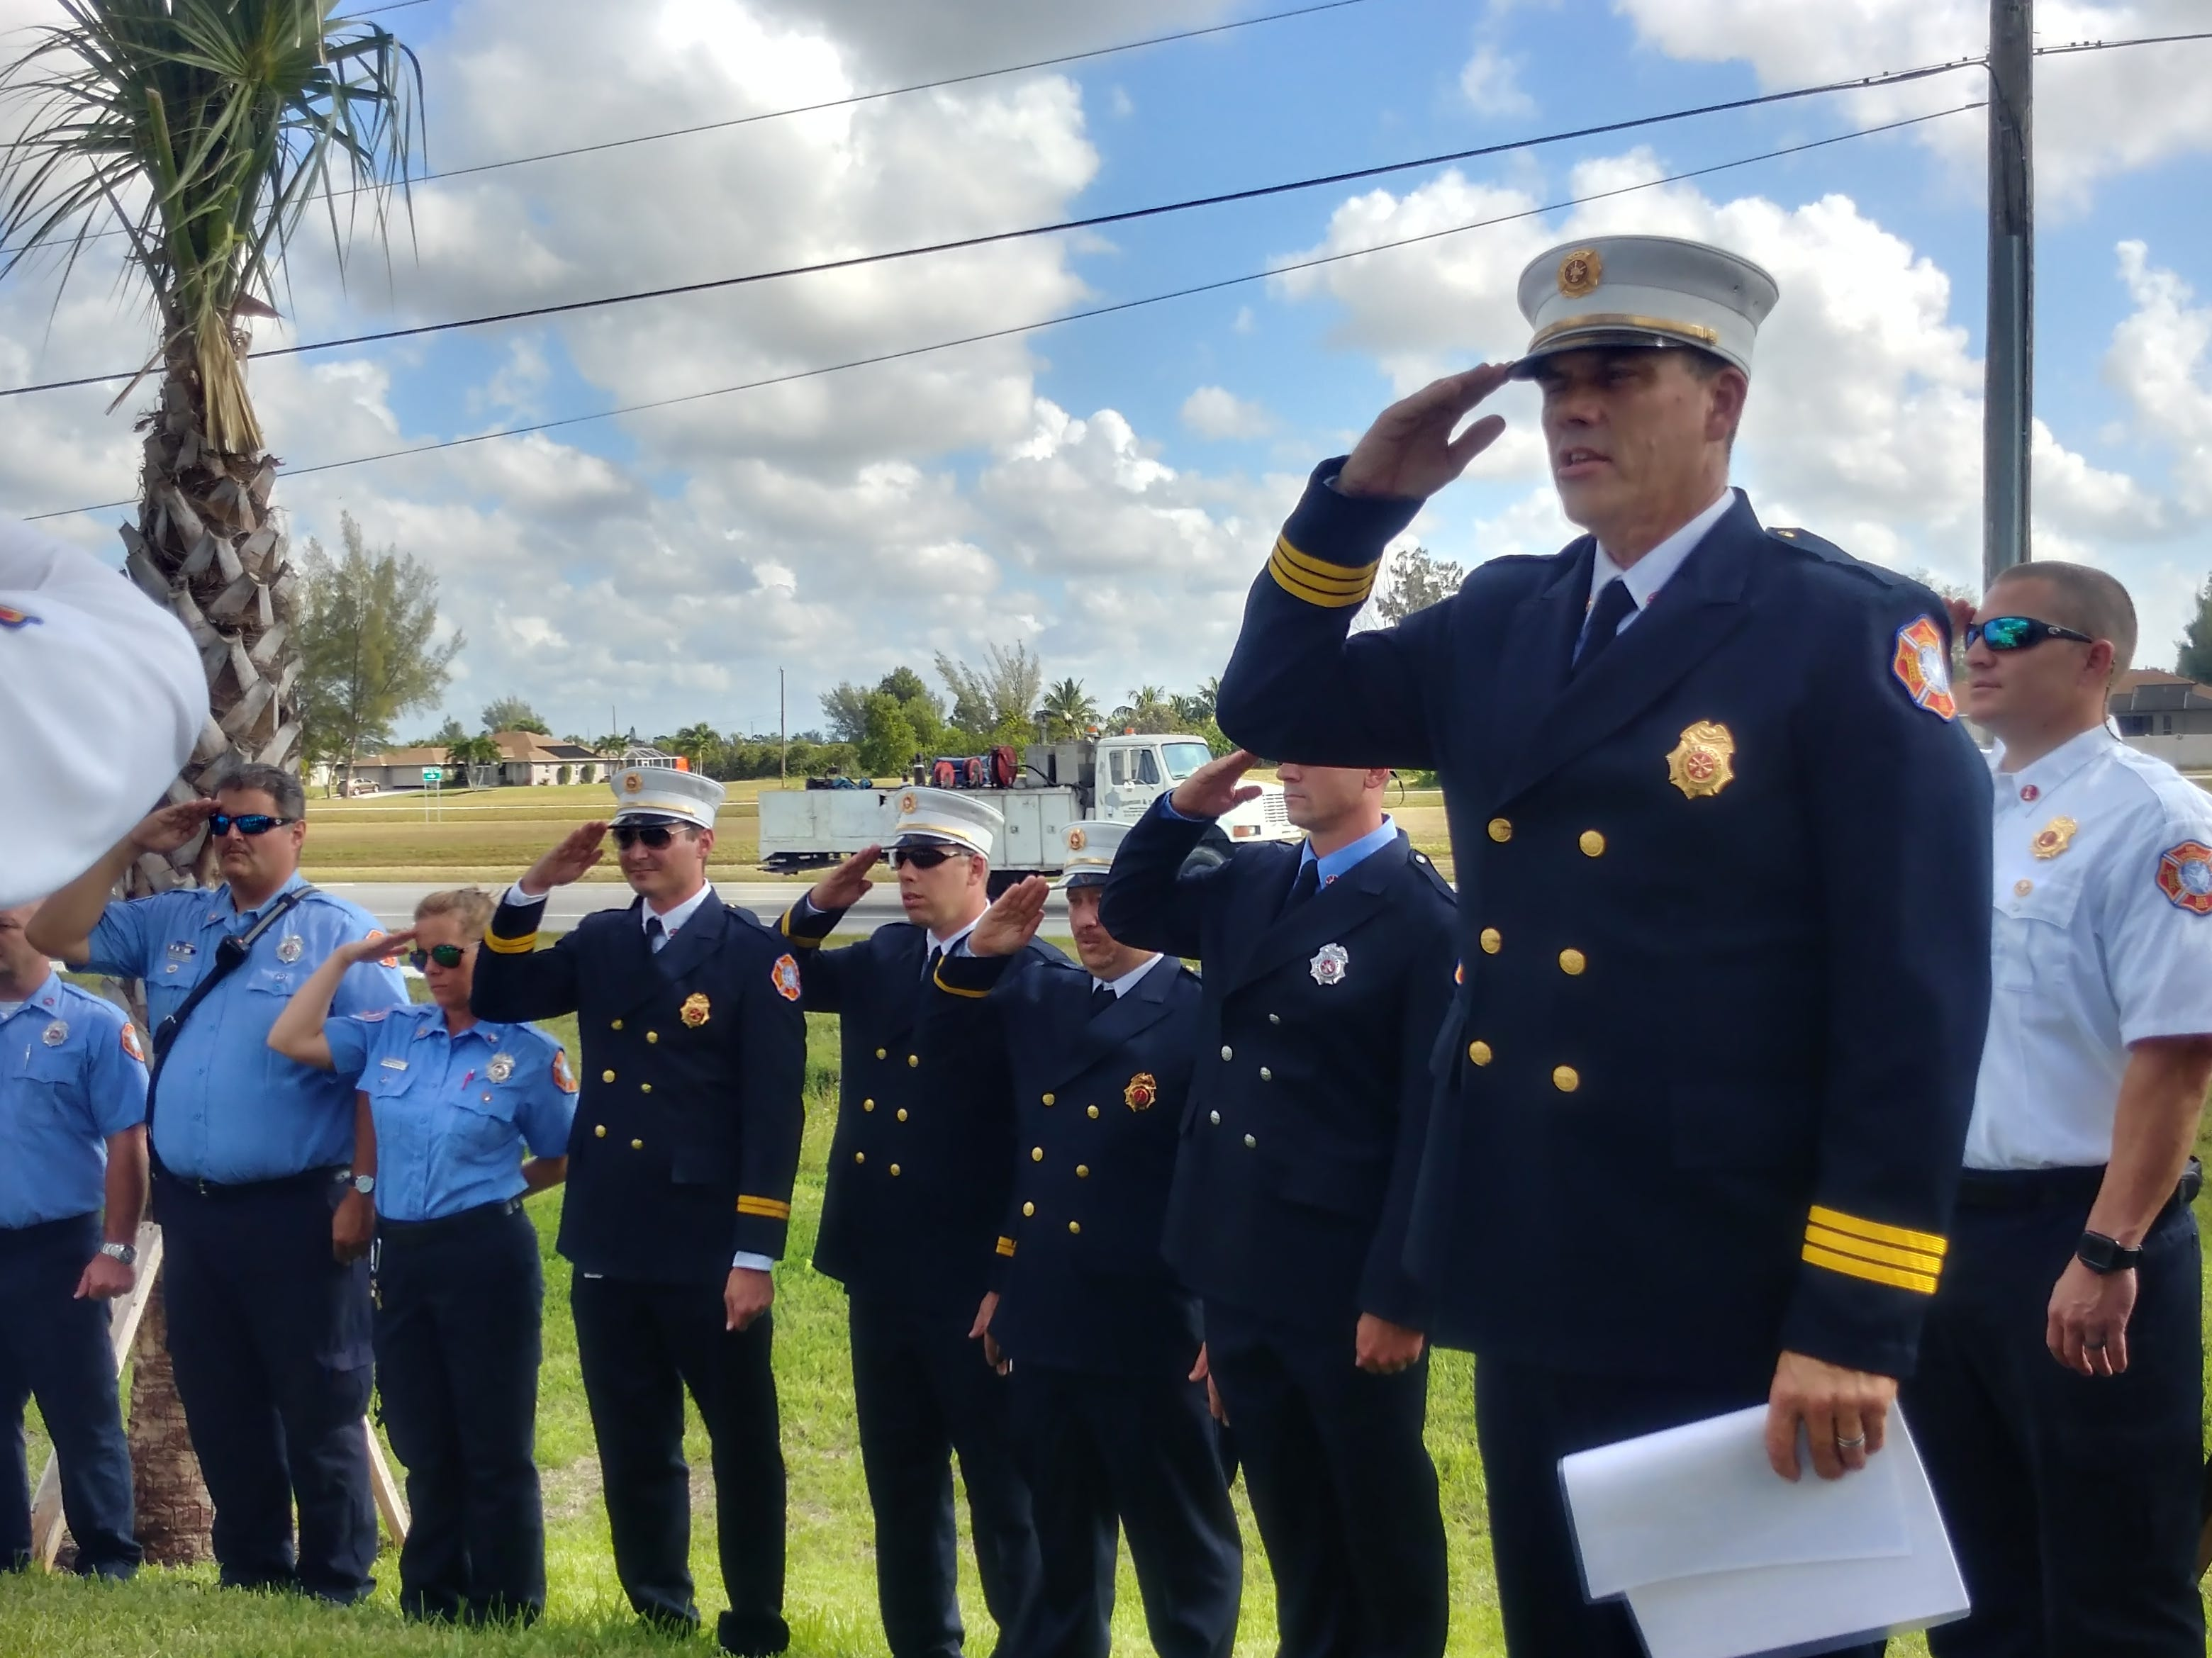 The Cape Coral Fire Department salutes during the Pledge of Allegiance during ground-breaking  ceremonies for Station 11.